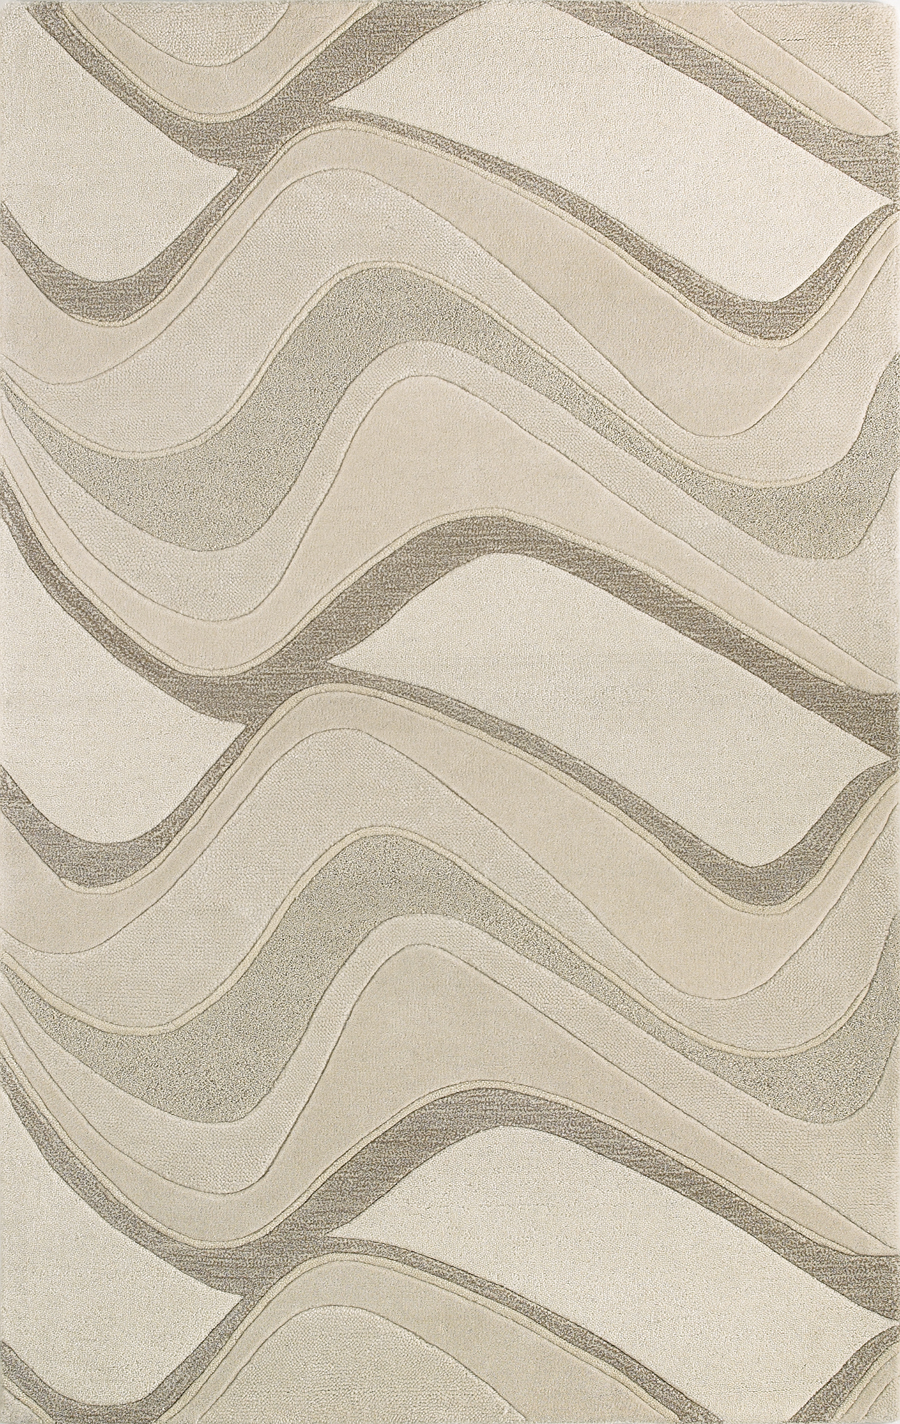 Eternity Waves 1085 Ivory Rug by Kas